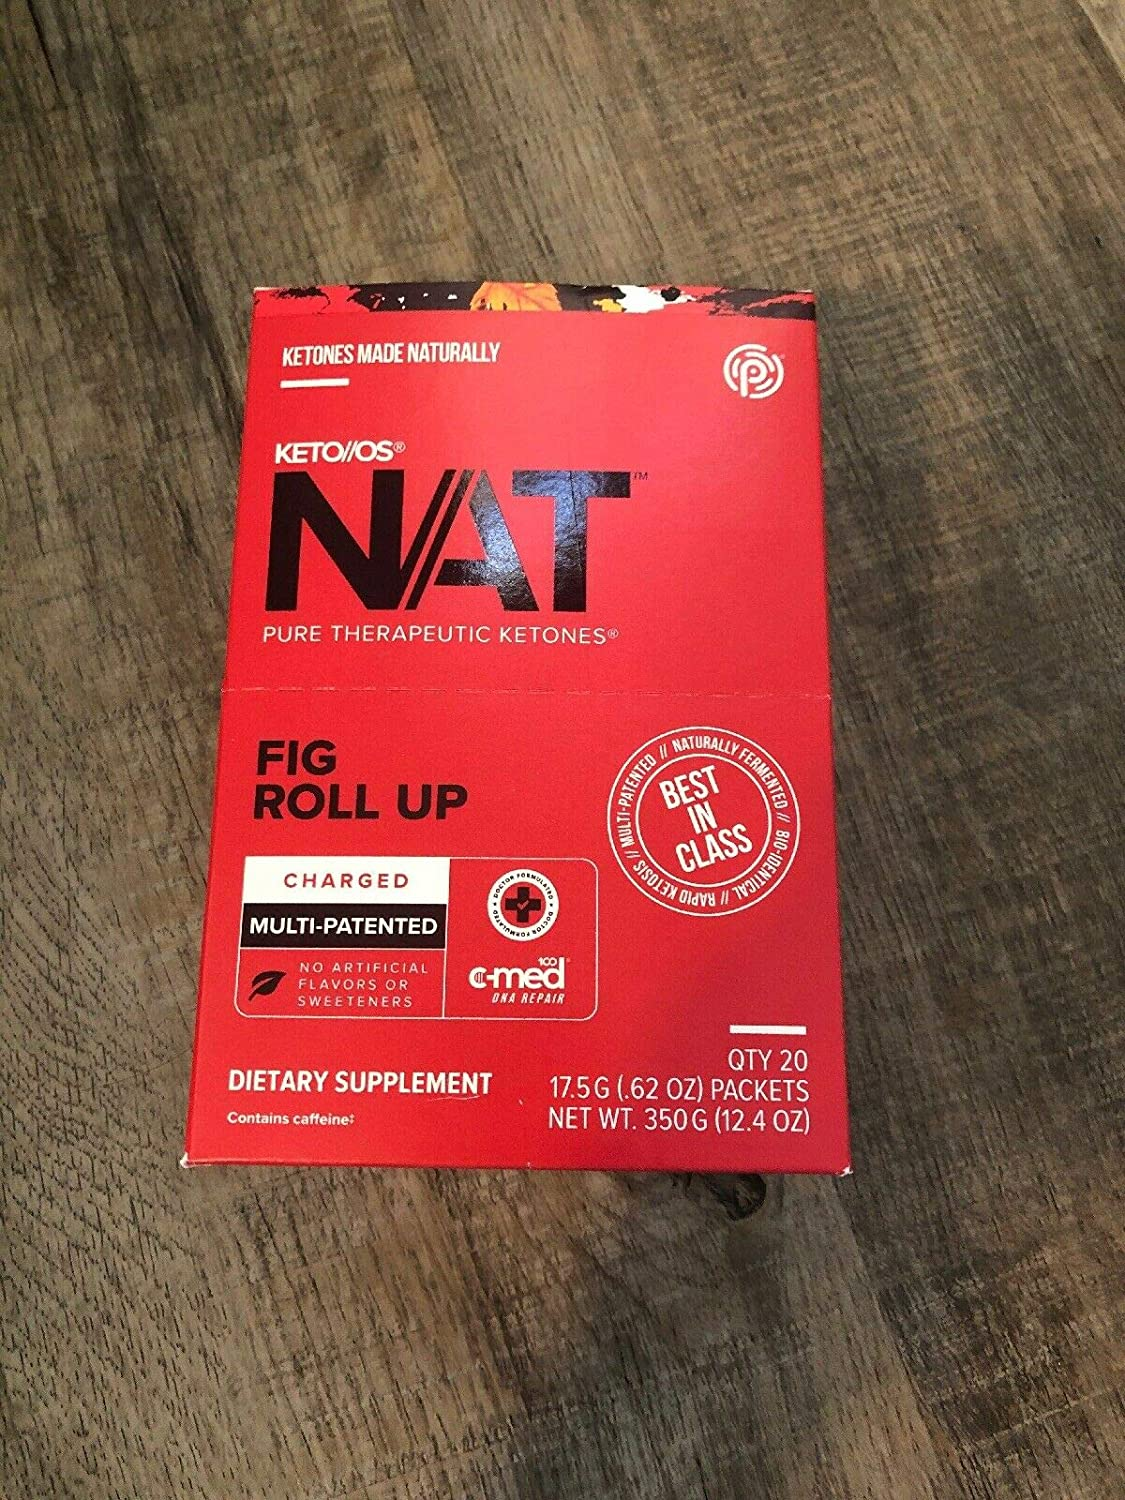 Pruvit KETO OS NAT Fig Roll Up charged 20 Packets Ketones 81xX72BJSdiL._SL1500_